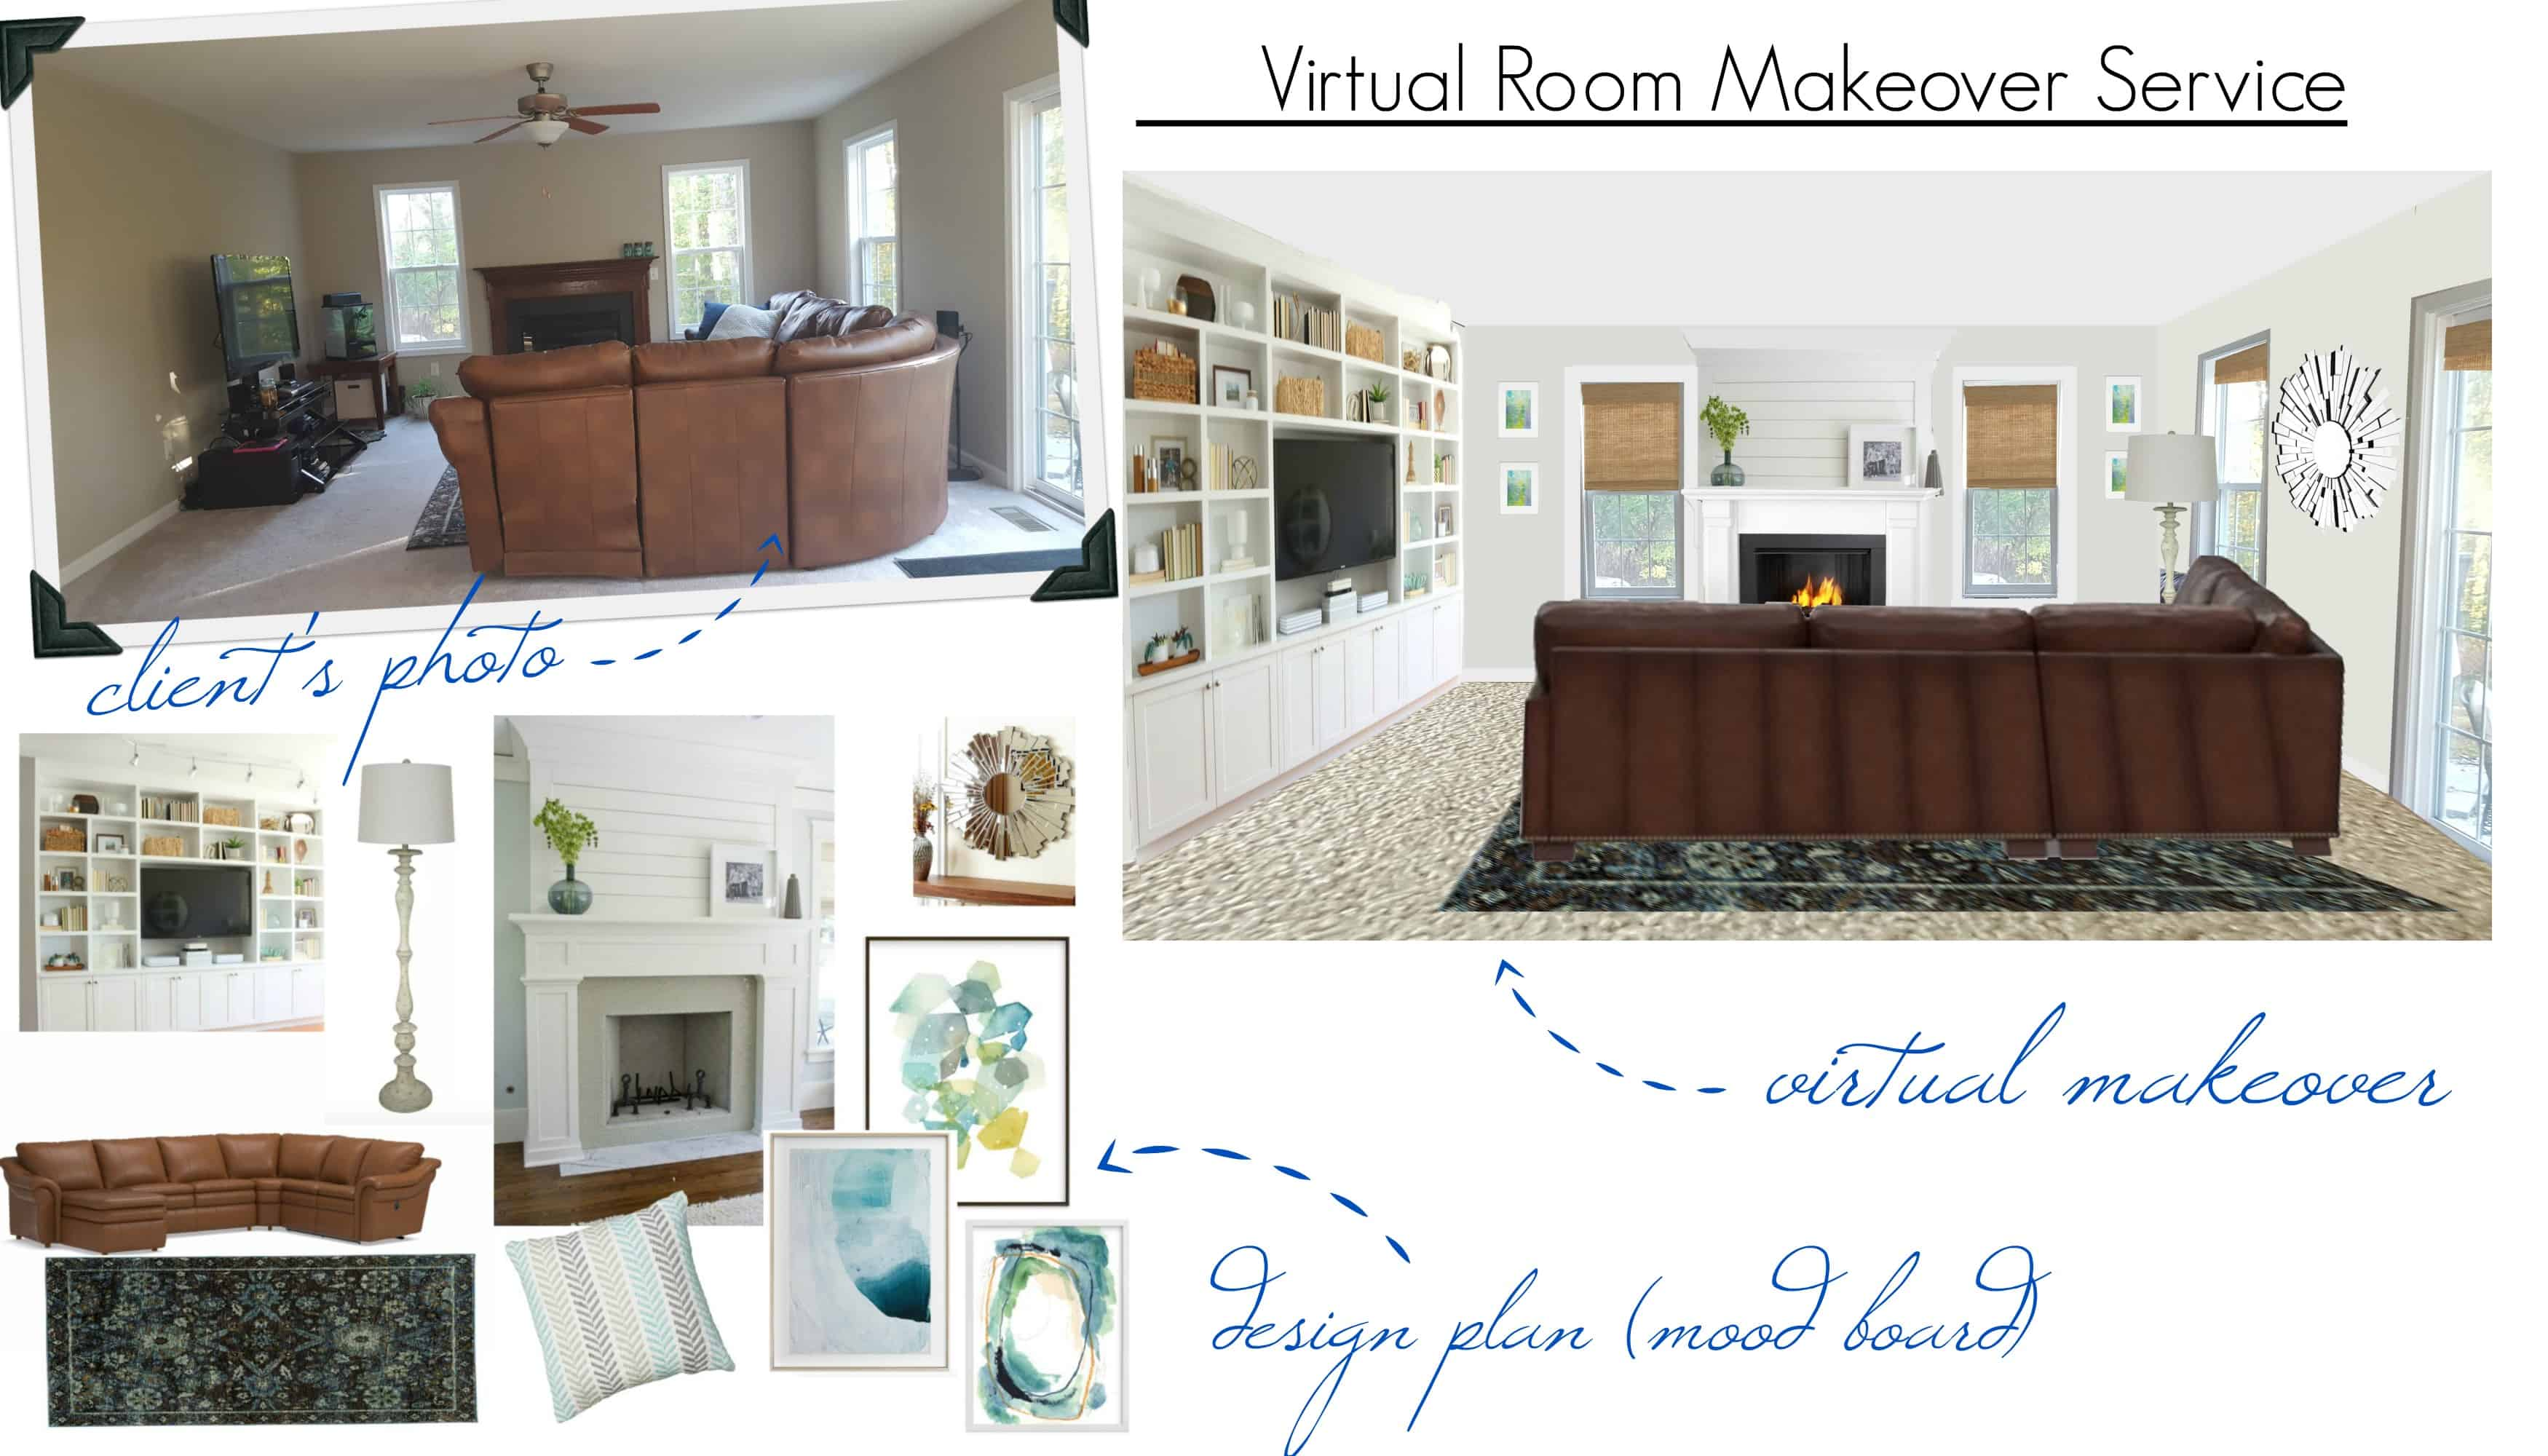 Virtual room makeover before and after